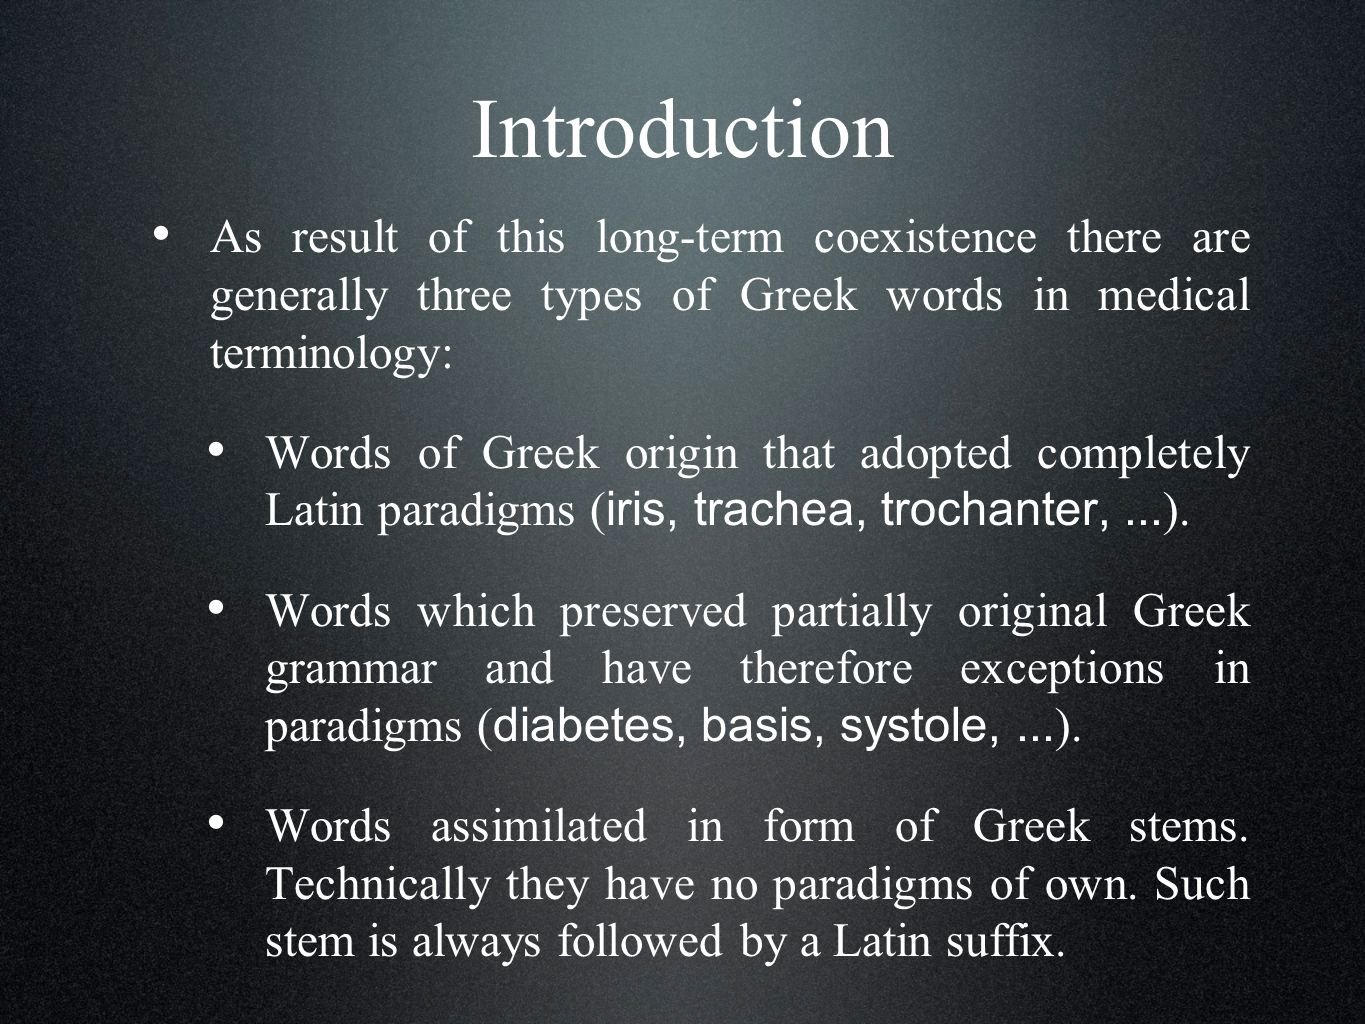 Introduction As result of this long-term coexistence there are generally three types of Greek words in medical terminology: Words of Greek origin that adopted completely Latin paradigms ( iris, trachea, trochanter,...